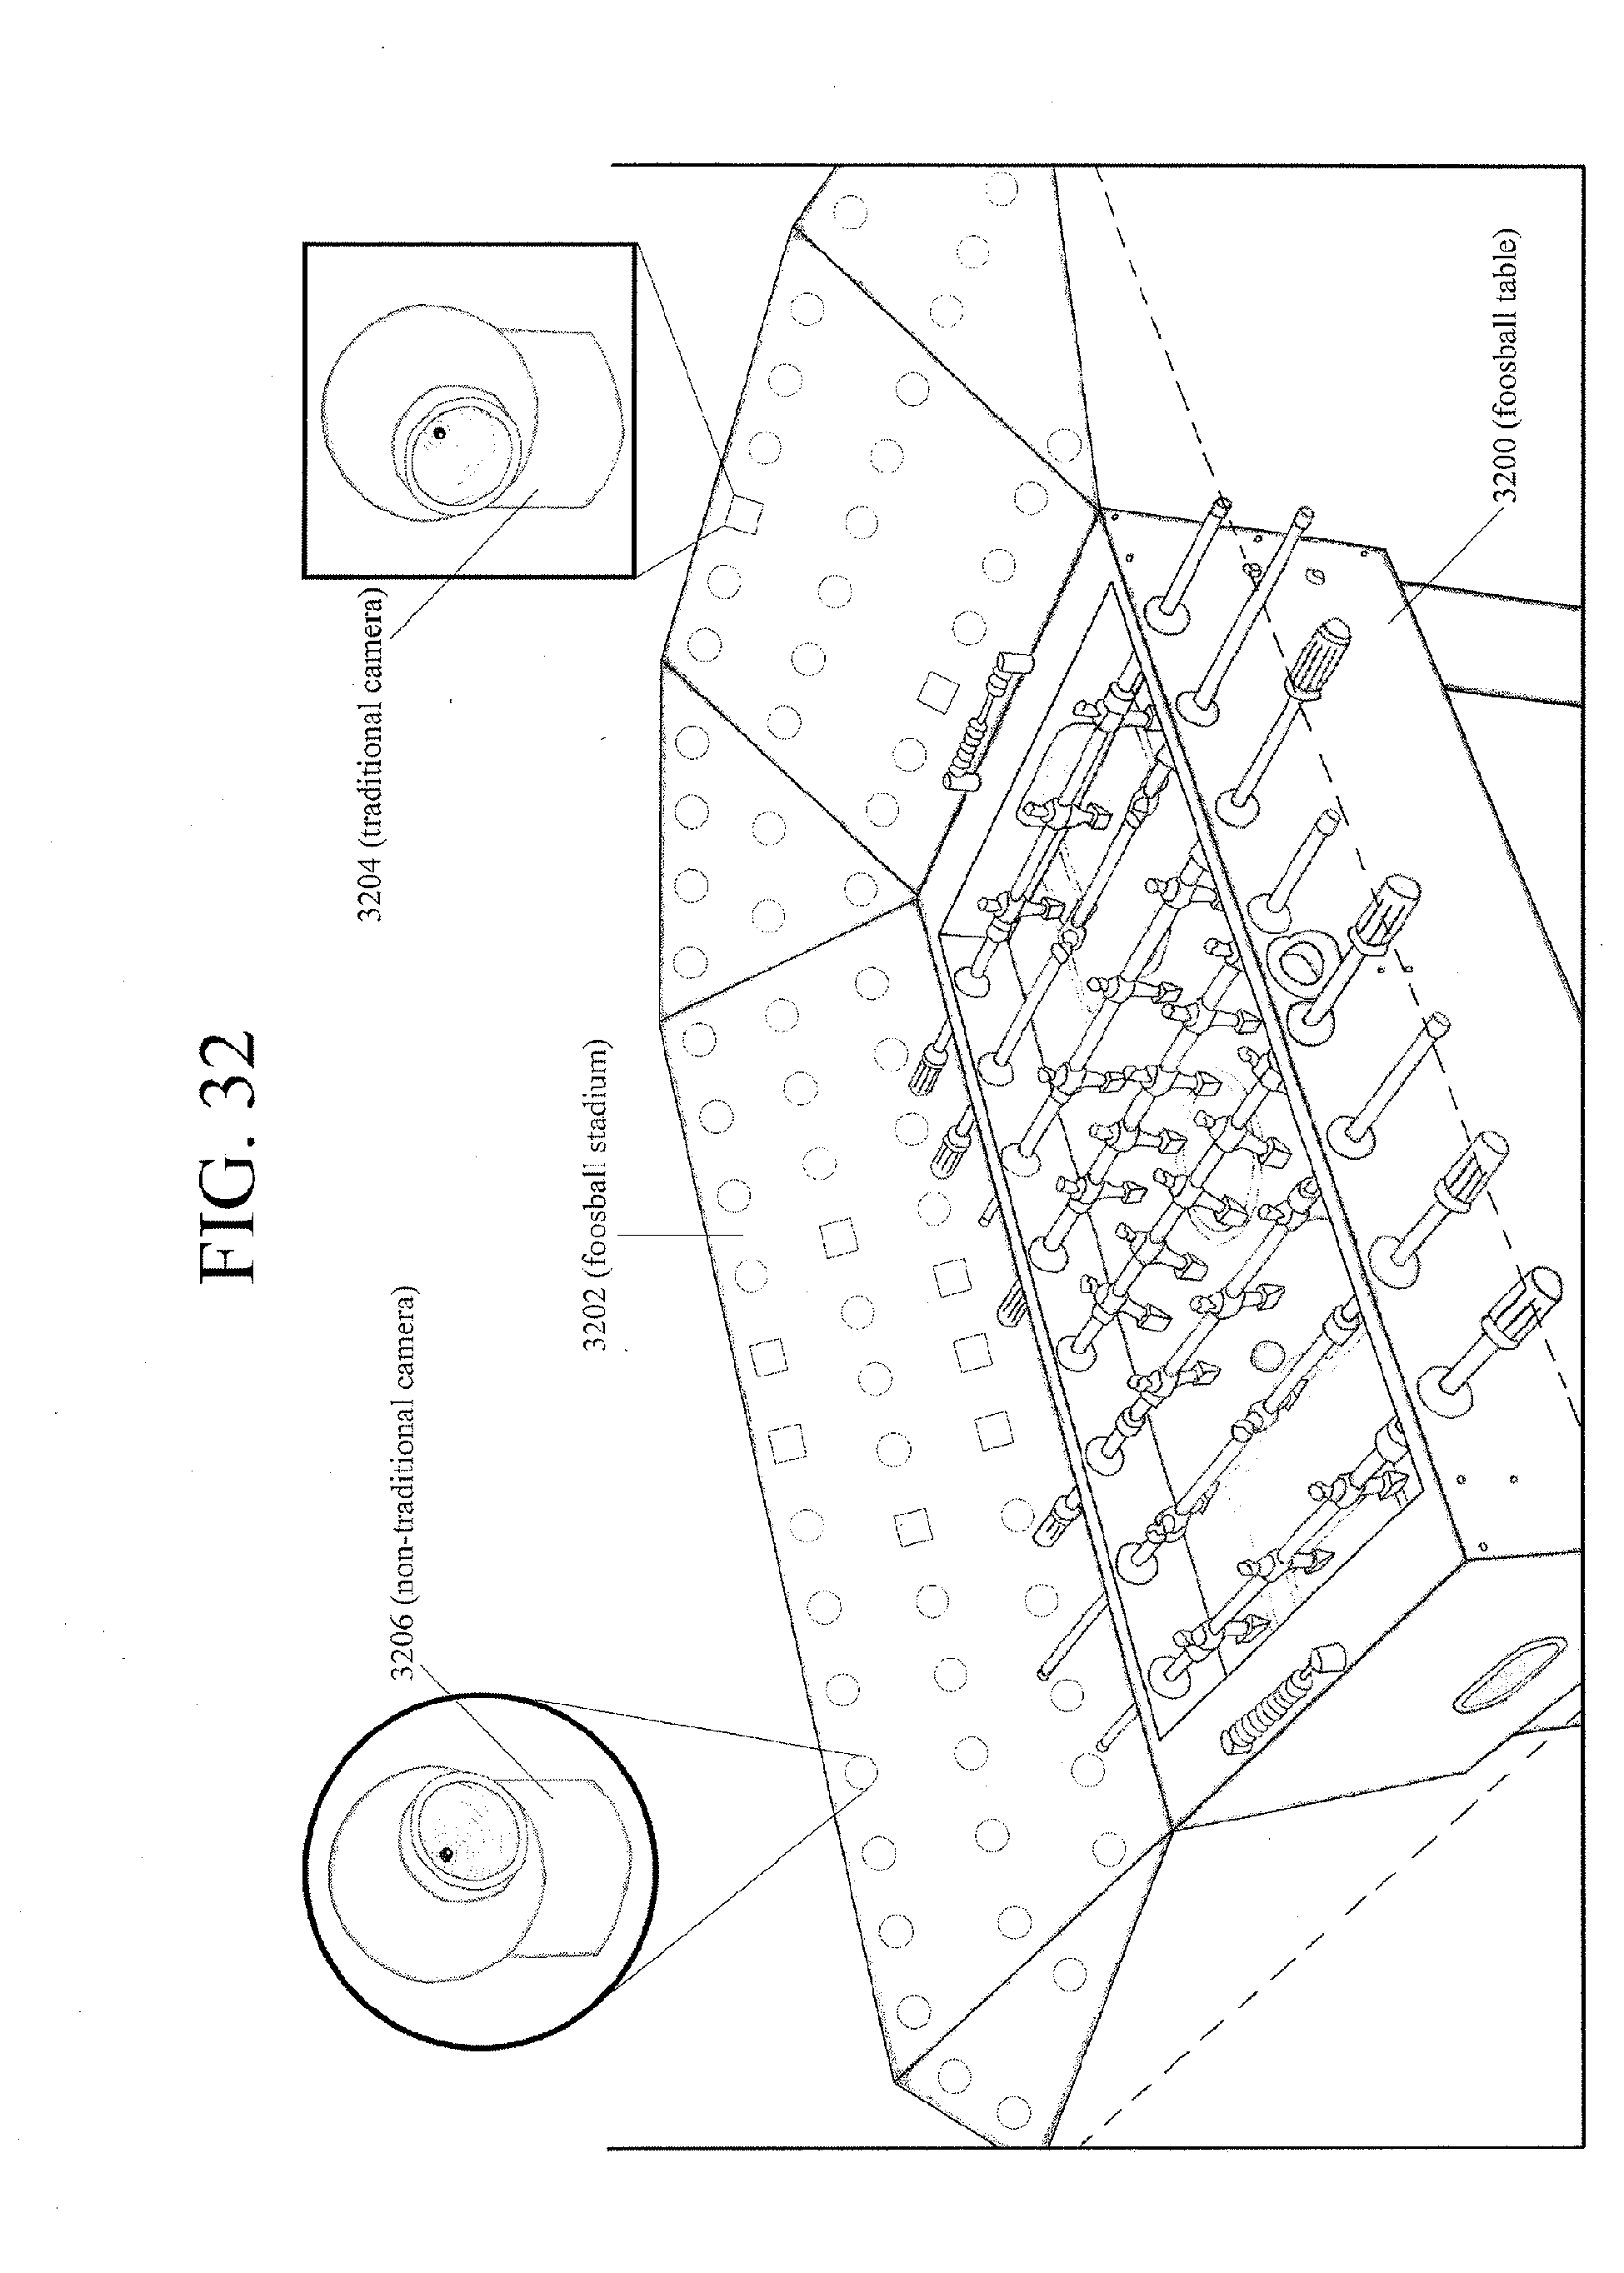 patent ep2150057a2 camera based tracking and position Surveillance Camera Wiring Diagram patent drawing